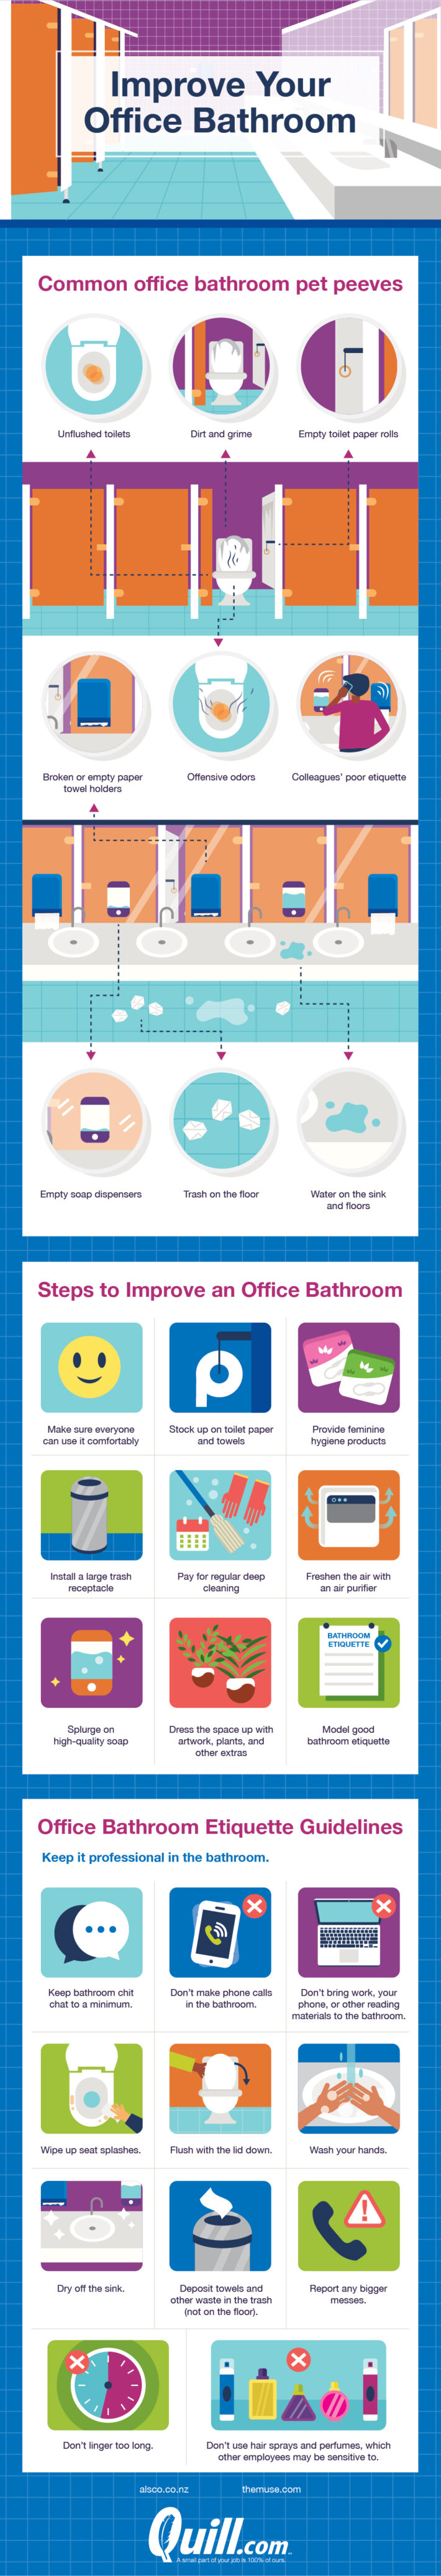 The biggest office bathroom pet peeves (and how to avoid them)